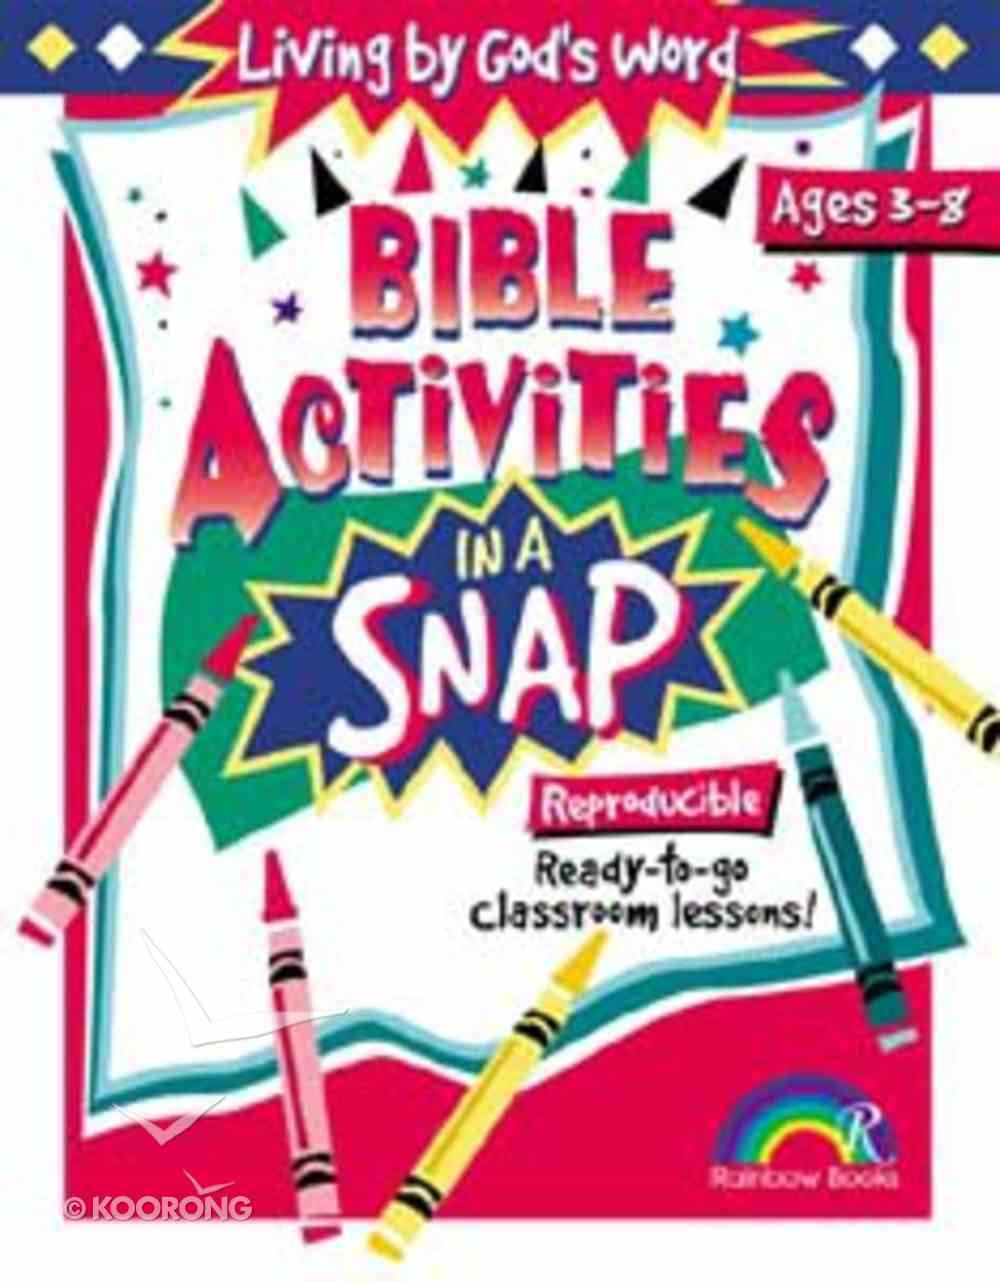 Living By God's Word (Reproducible) (Bible Activities In A Snap Series) Paperback